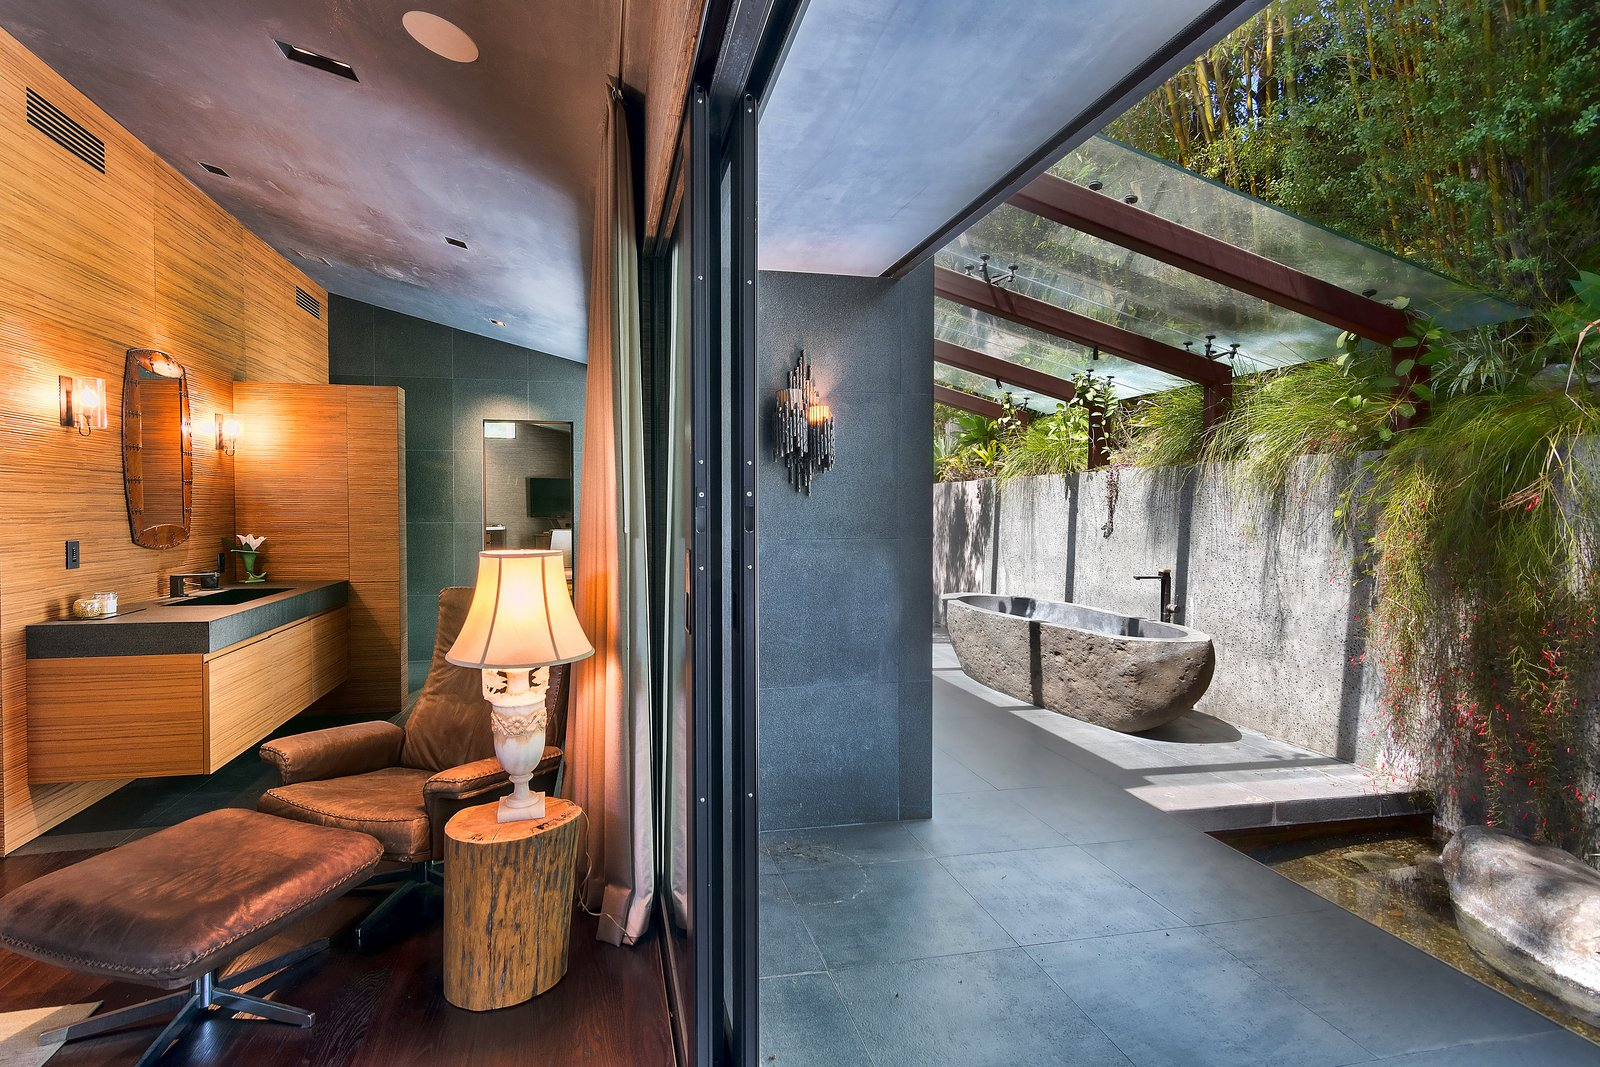 Bath Room, Wall Lighting, Freestanding Tub, Soaking Tub, Drop In Sink, and Recessed Lighting  Photo 10 of 14 in John Legend and Chrissy Teigen's Former Midcentury Home in the Hollywood Hills Is For Sale